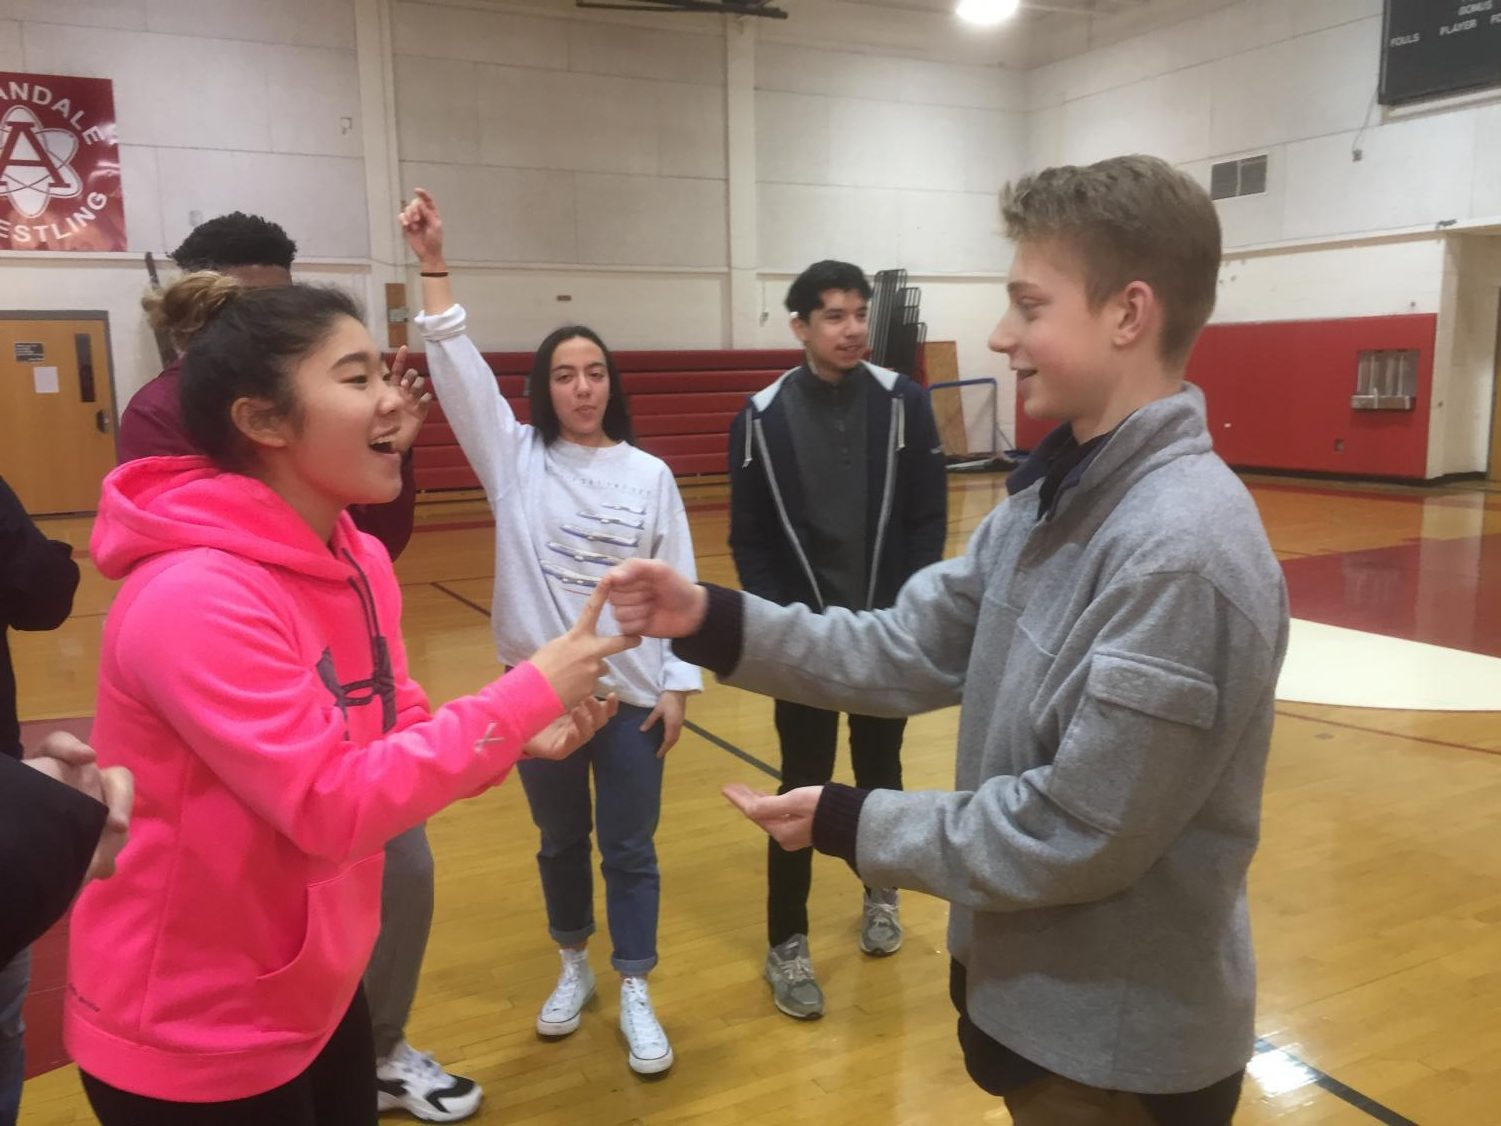 Fellowship of Christian Athletes members McKenzie Yi (Left) and Nate Peters (Right) play in a game of rock, paper, scissors during a meeting on Jan. 19.